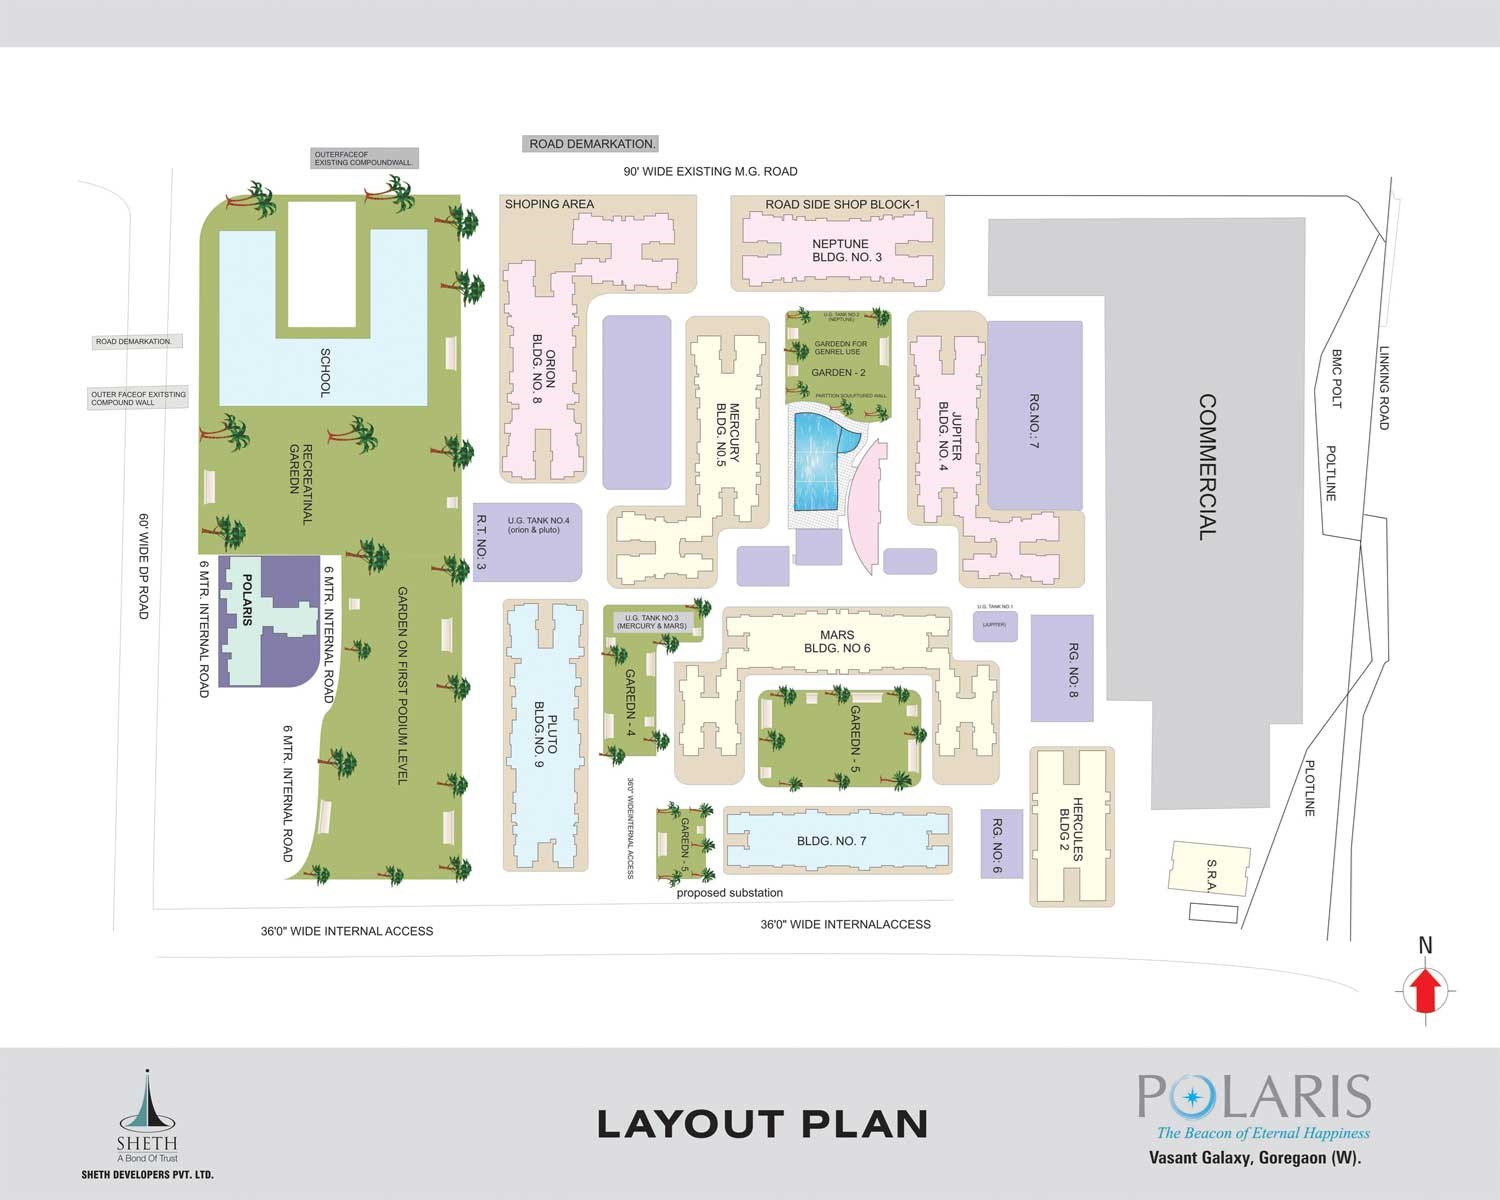 Polaris Lay Out